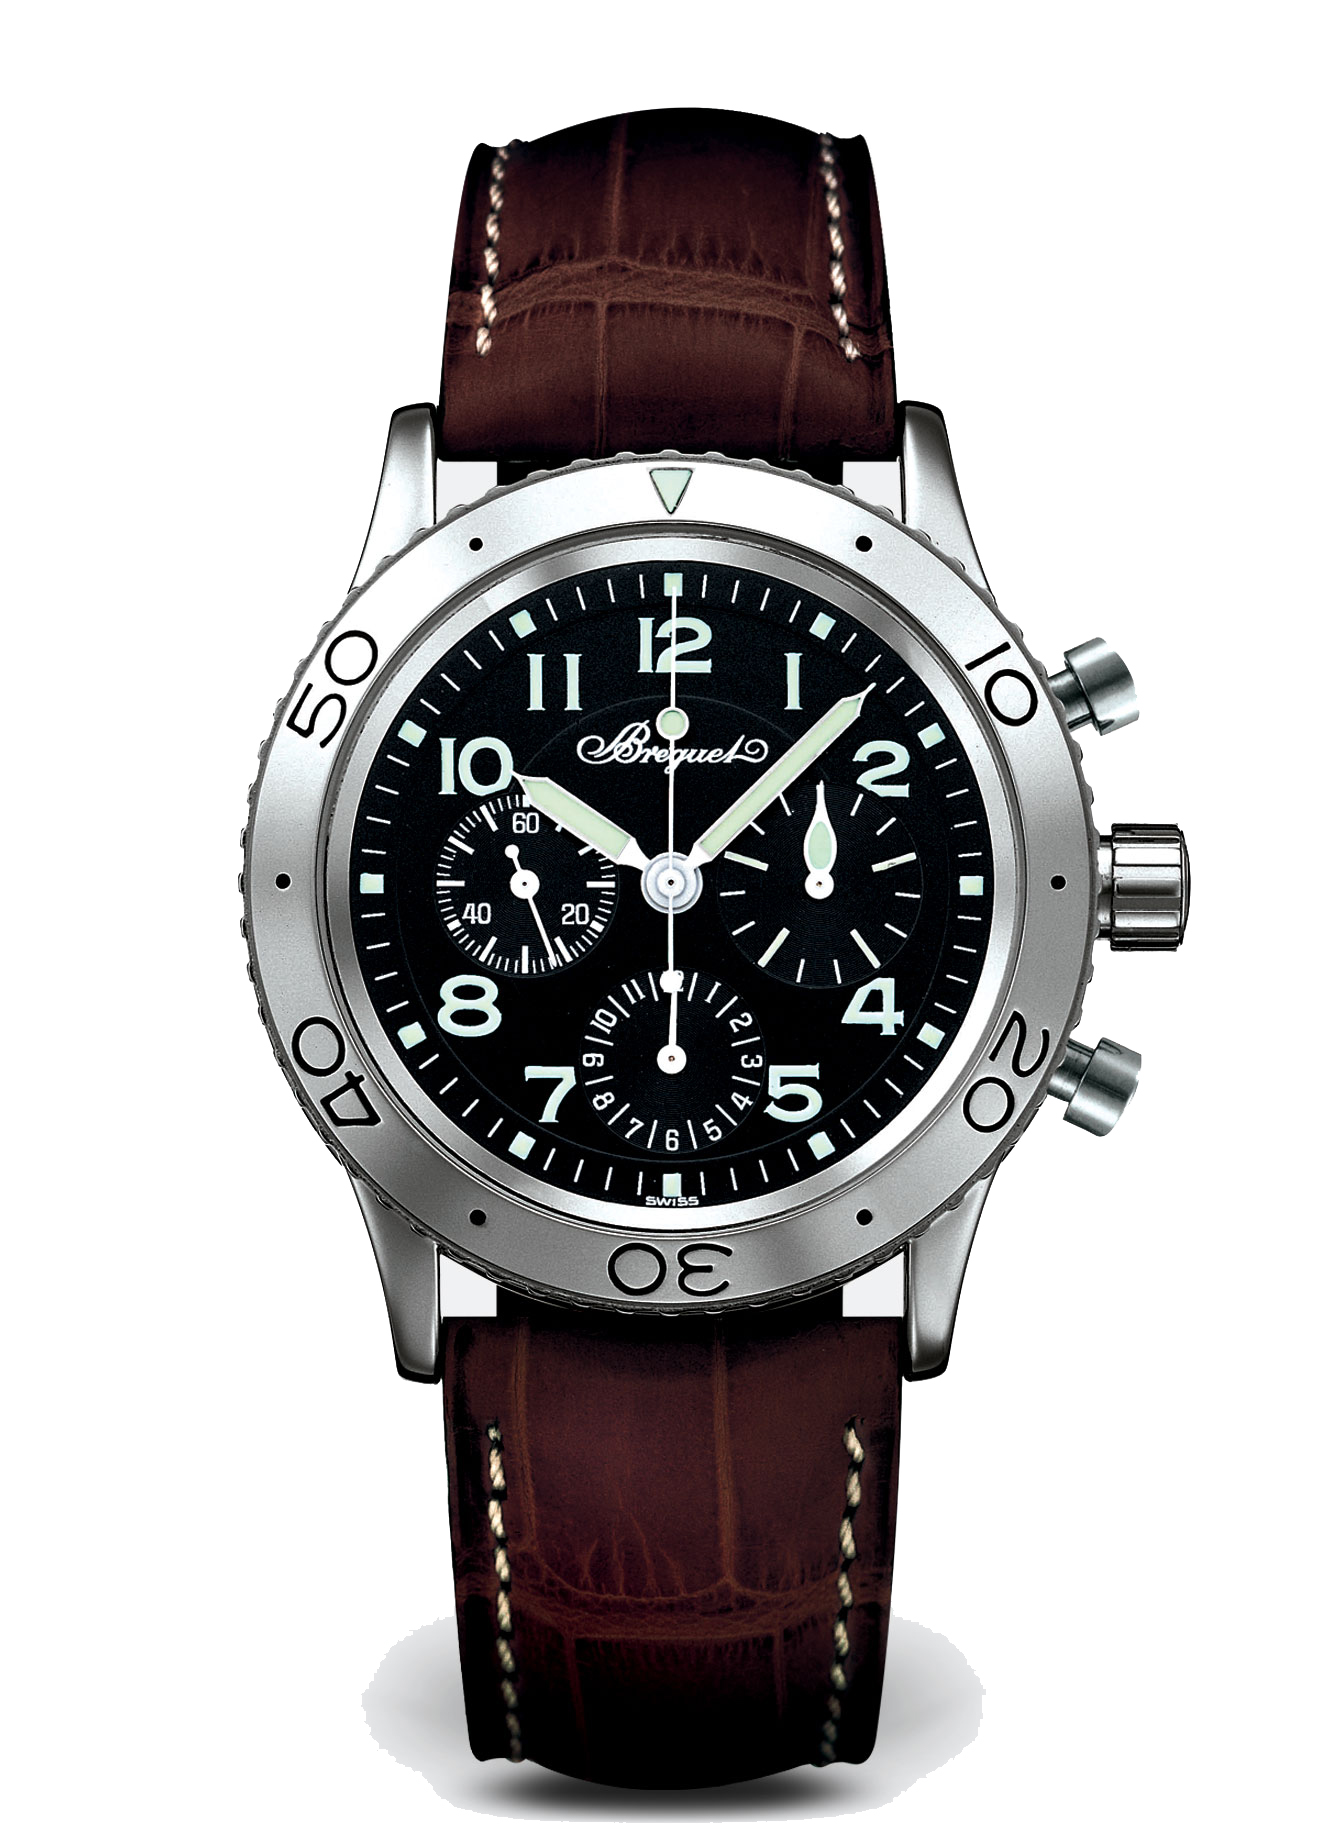 Breguet-Type_XX_XXI_XXII-3800-Hall-of-Time-3800st-92-9w6